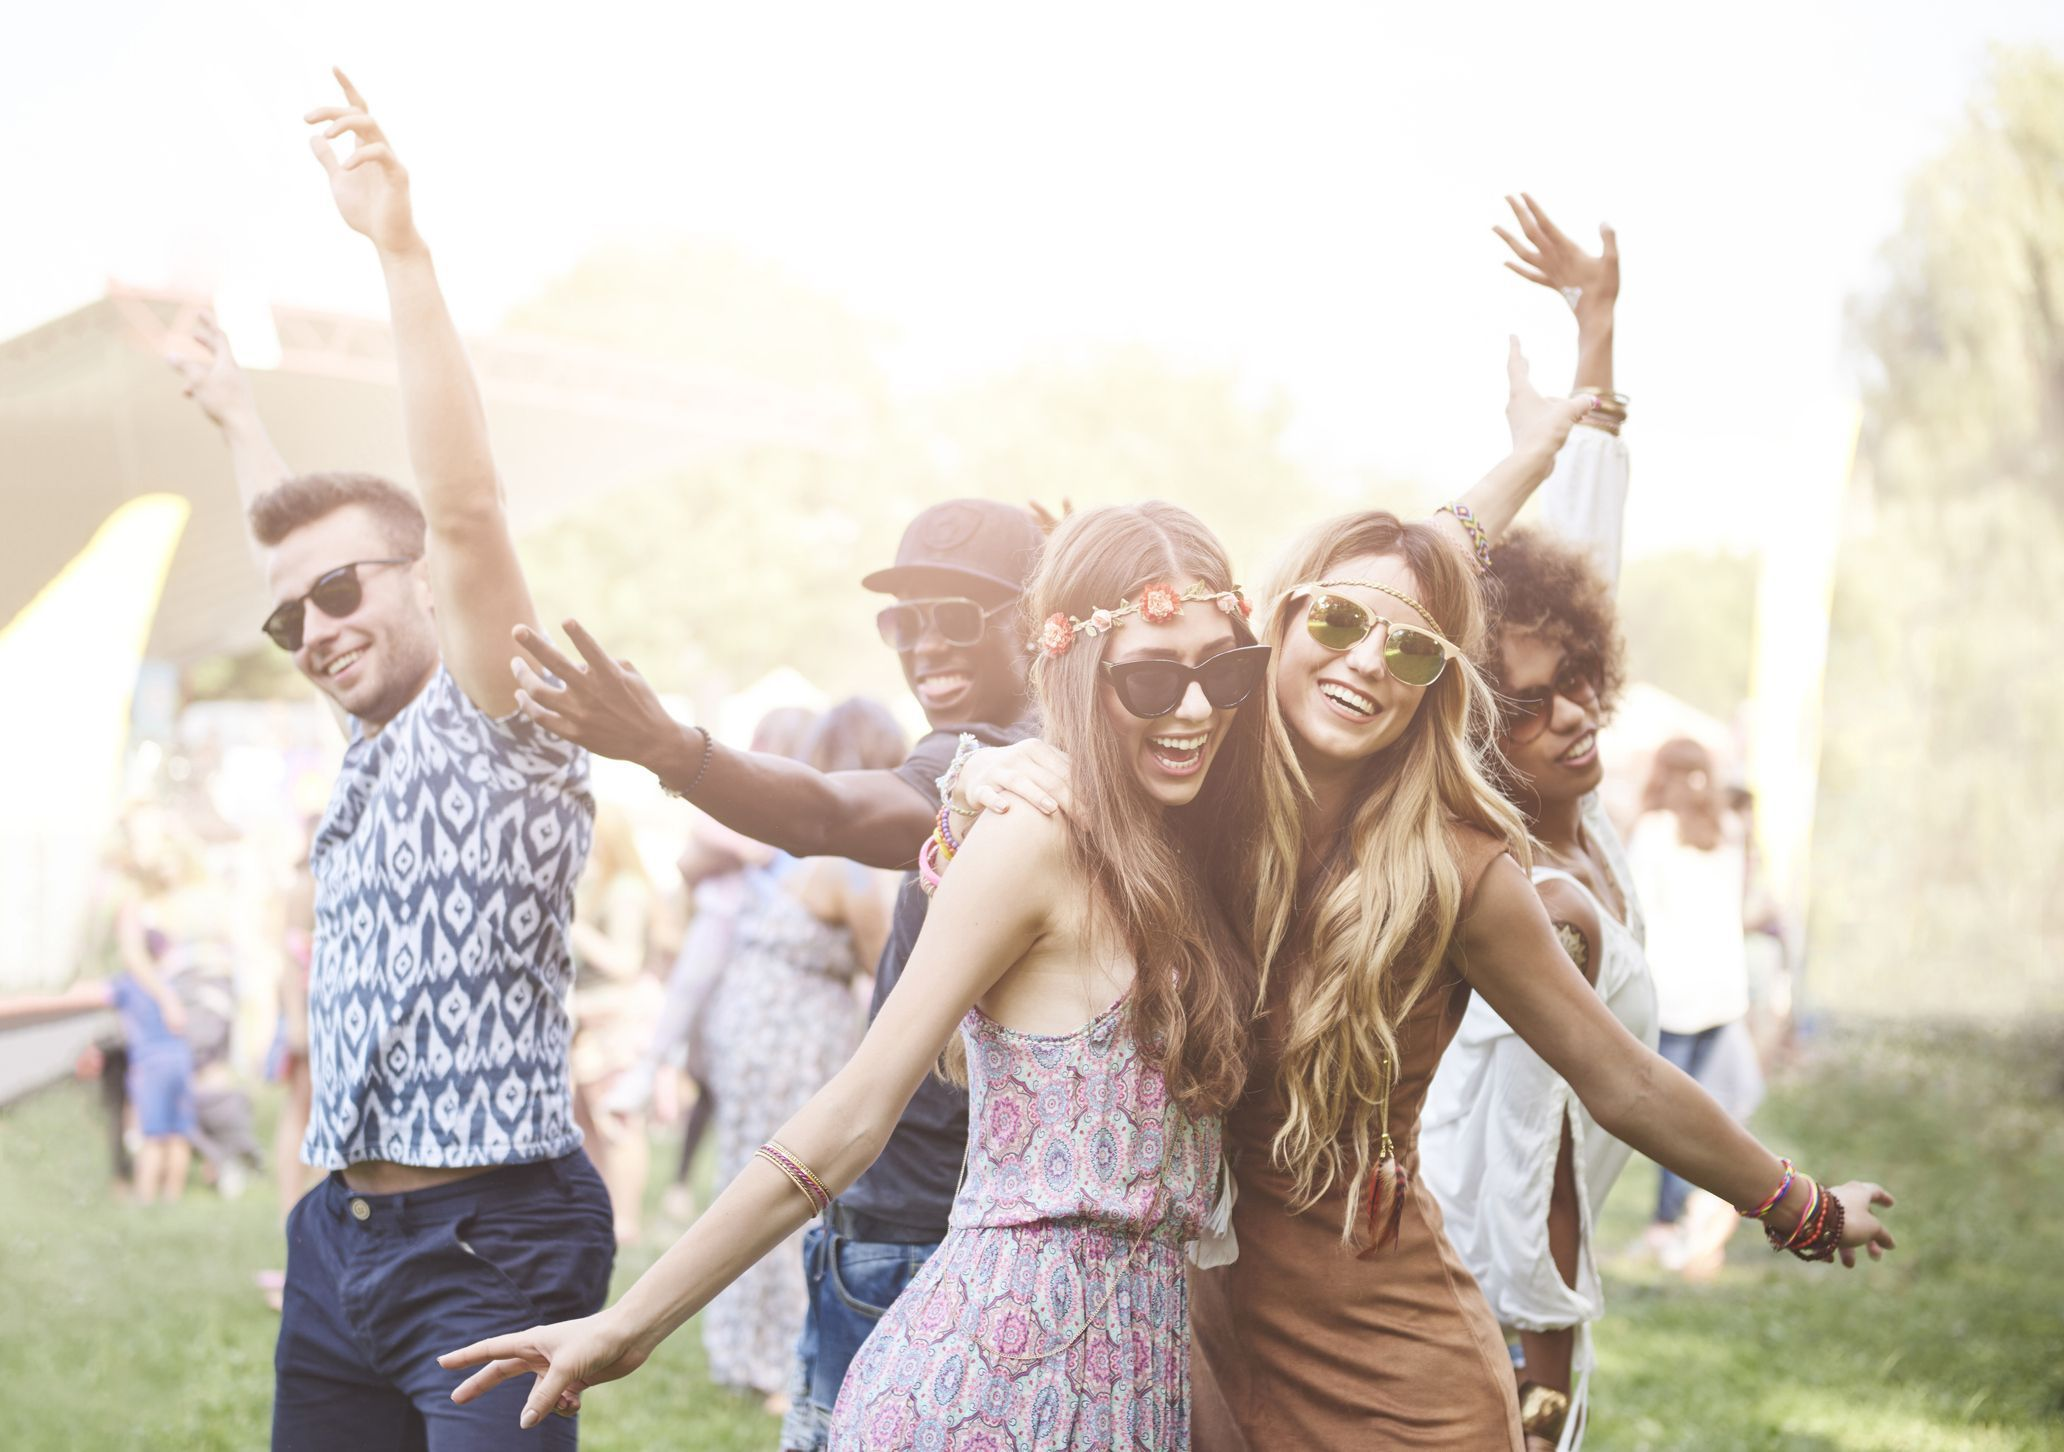 Amplify your Mondays with a plan to visit a famous music festival. Coachella Music and Art Festival, California. #mondaymusic #musicmonday #monday #music #musicfestival #loveformusic #musicislife #travelformusic #musictravel #travel #travlyng #travelmusic